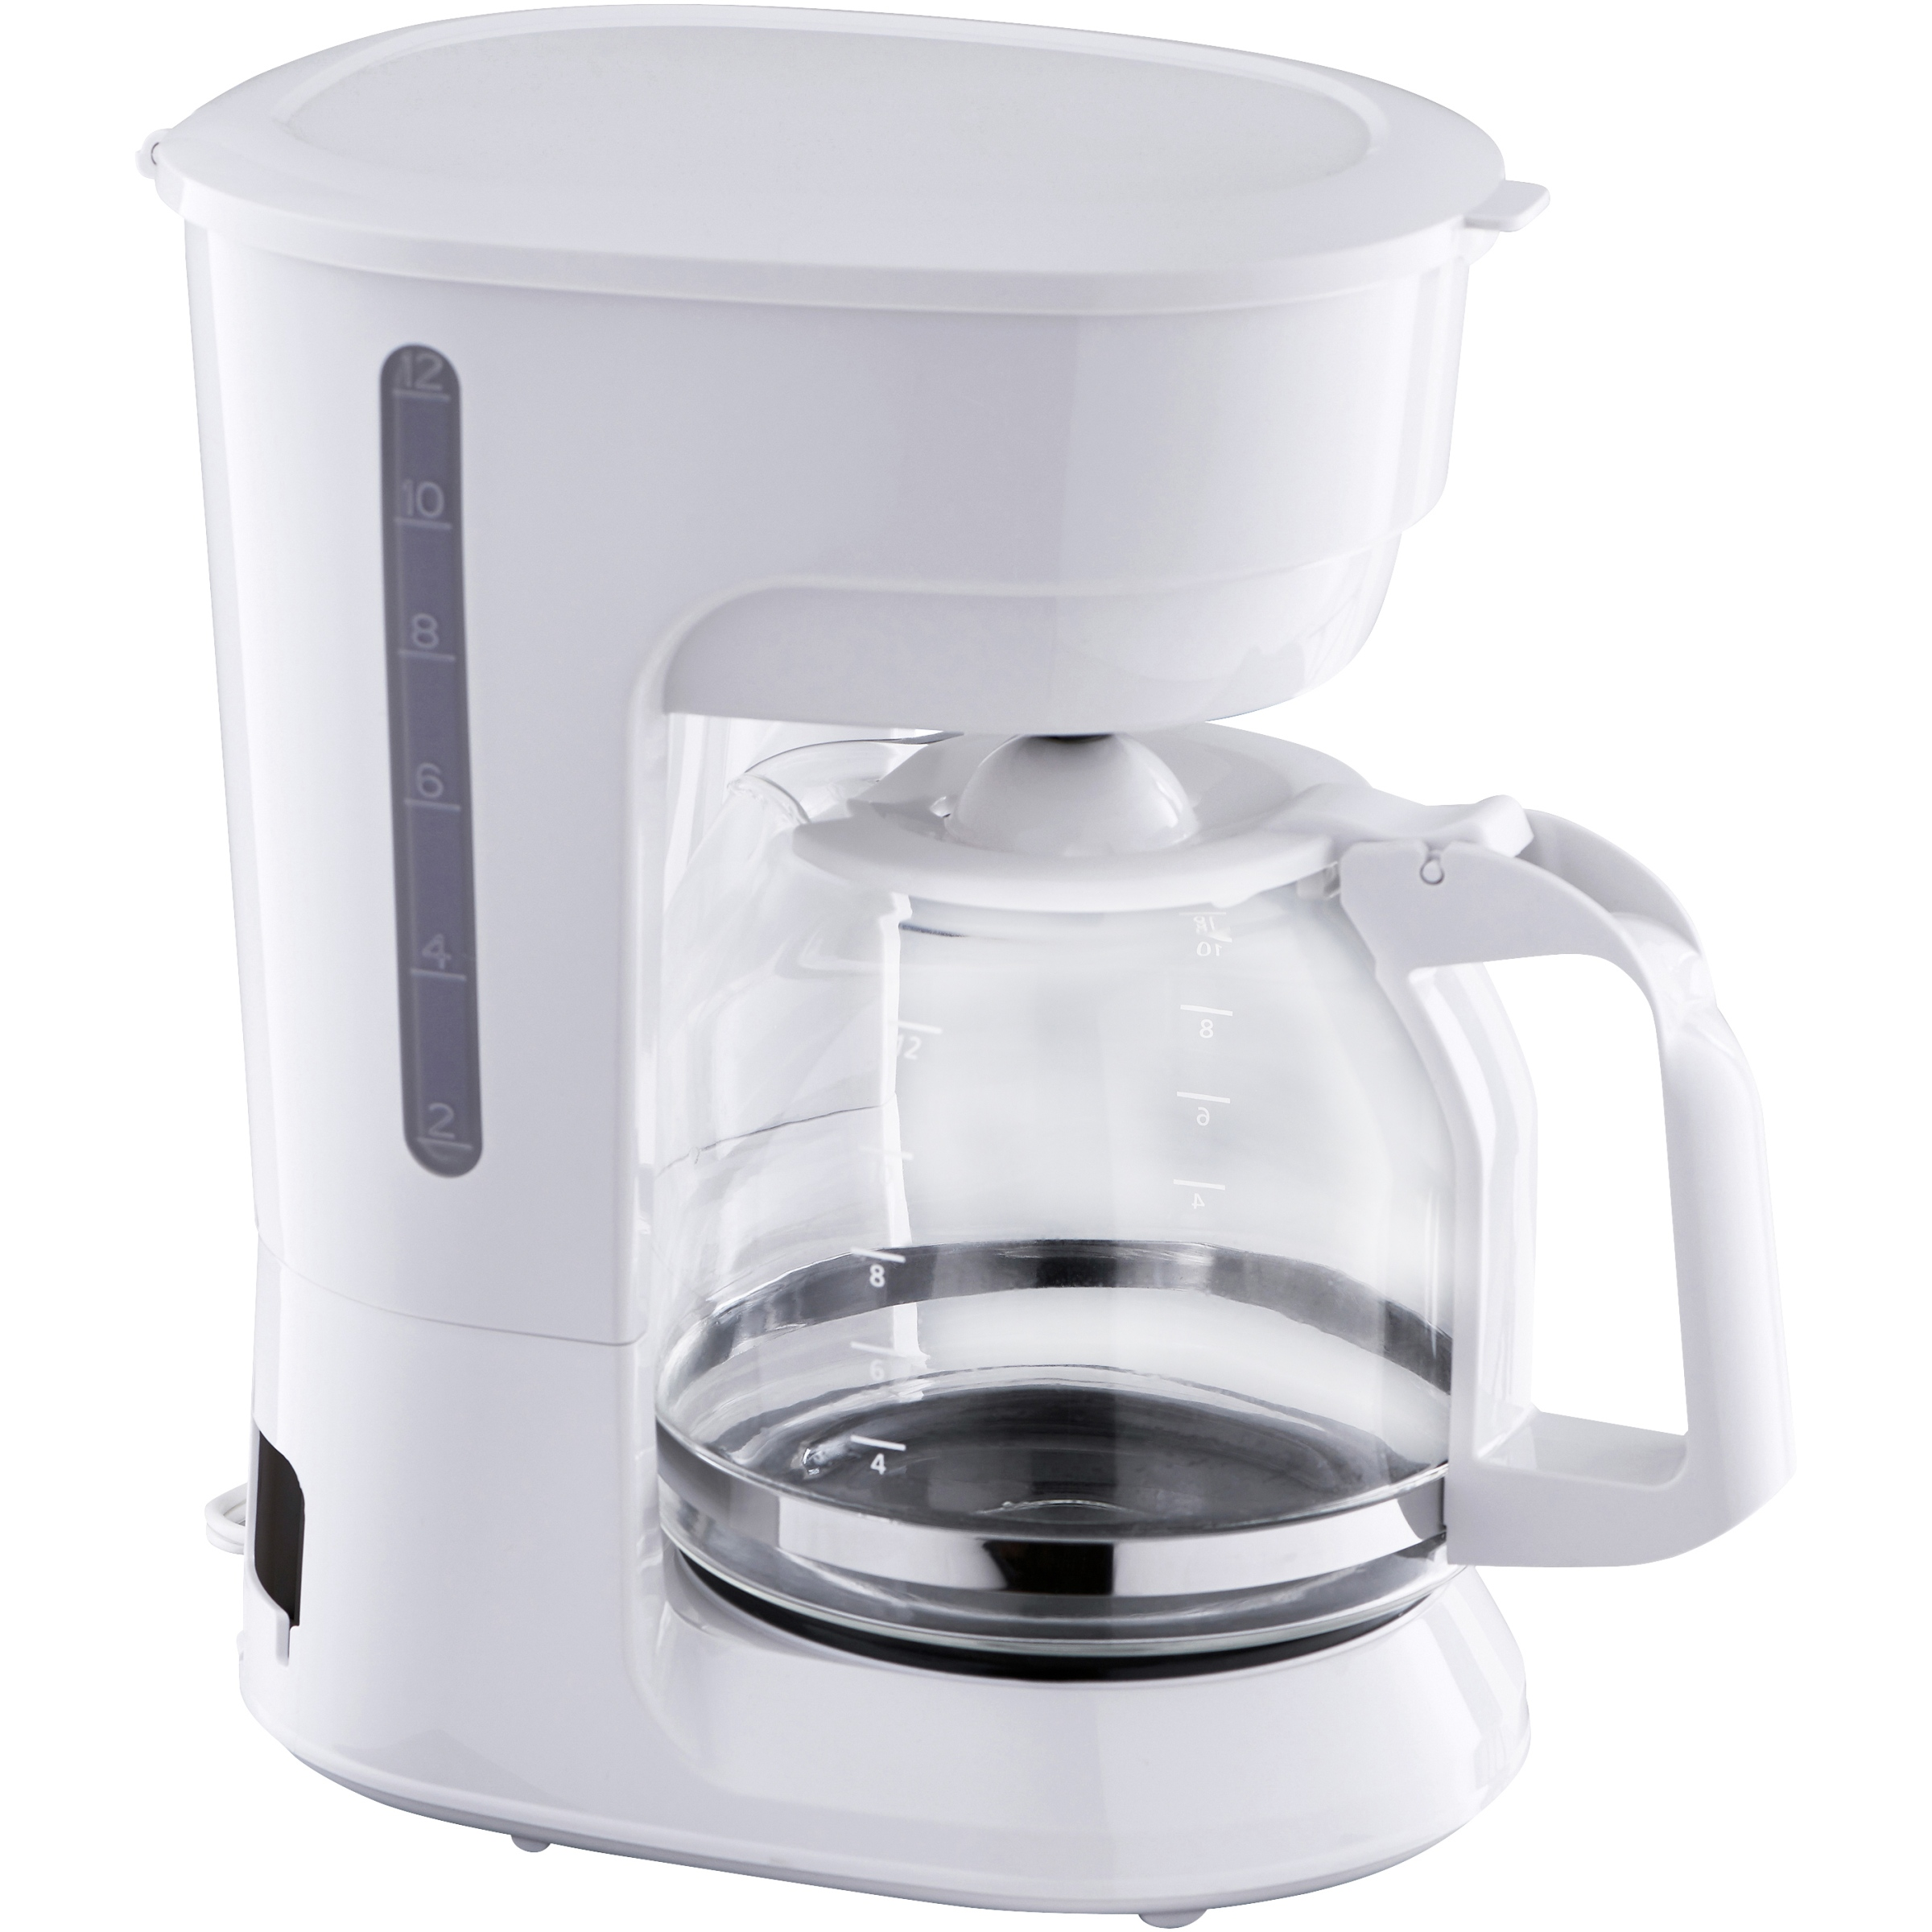 Mainstays 12 Cup White Coffee Maker with Removable Filter Basket, 1 Each